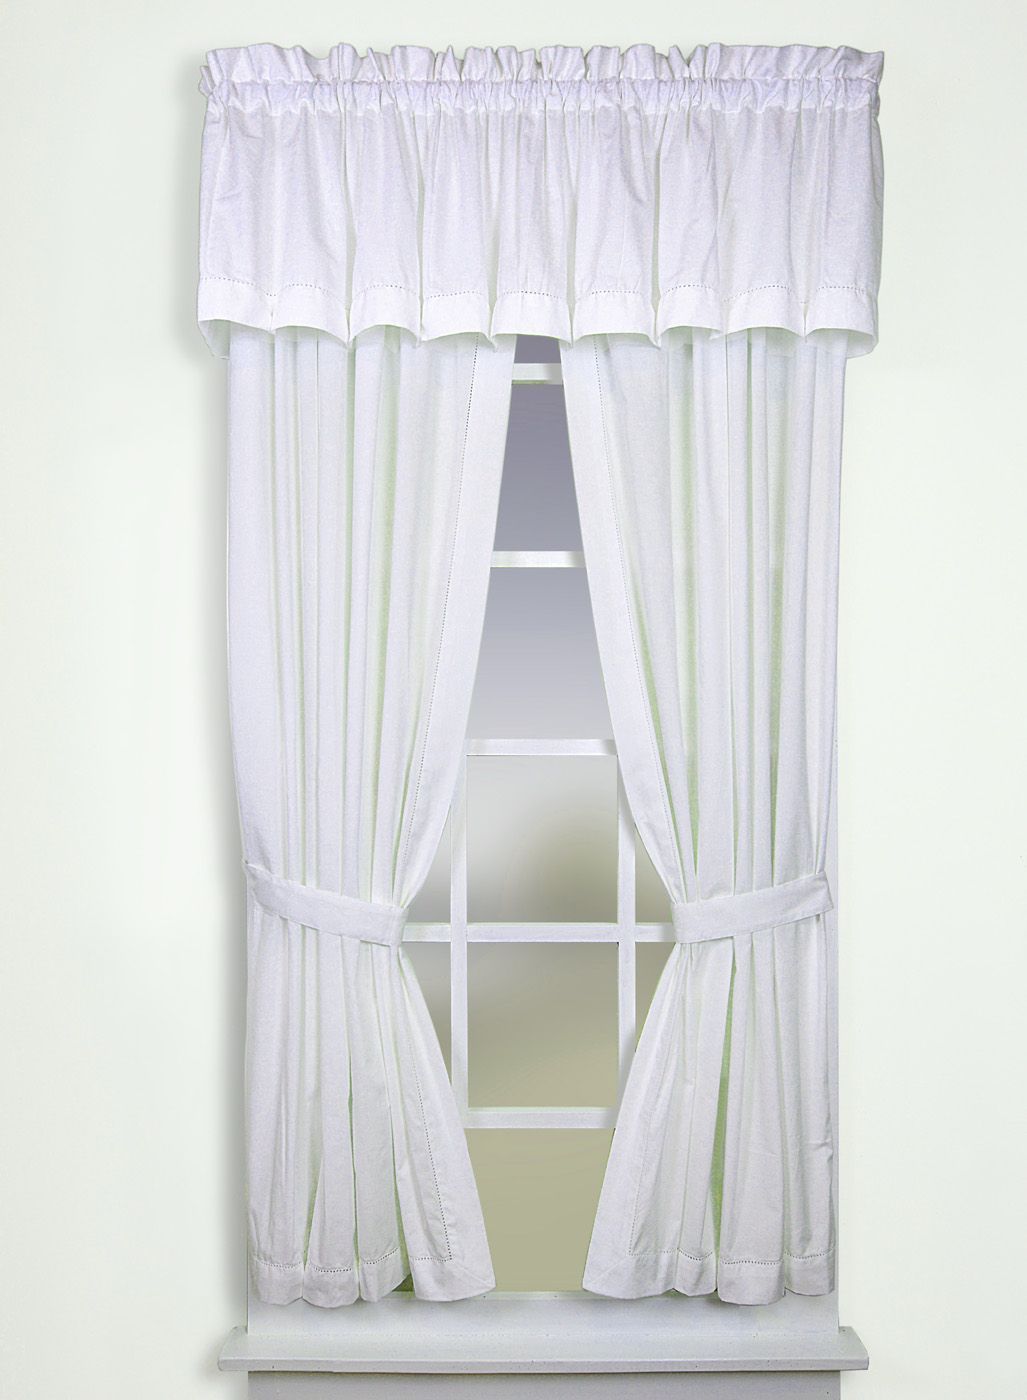 45 Inch Long Curtains – Thecurtainshop Within Glasgow Curtain Tier Sets (View 18 of 20)